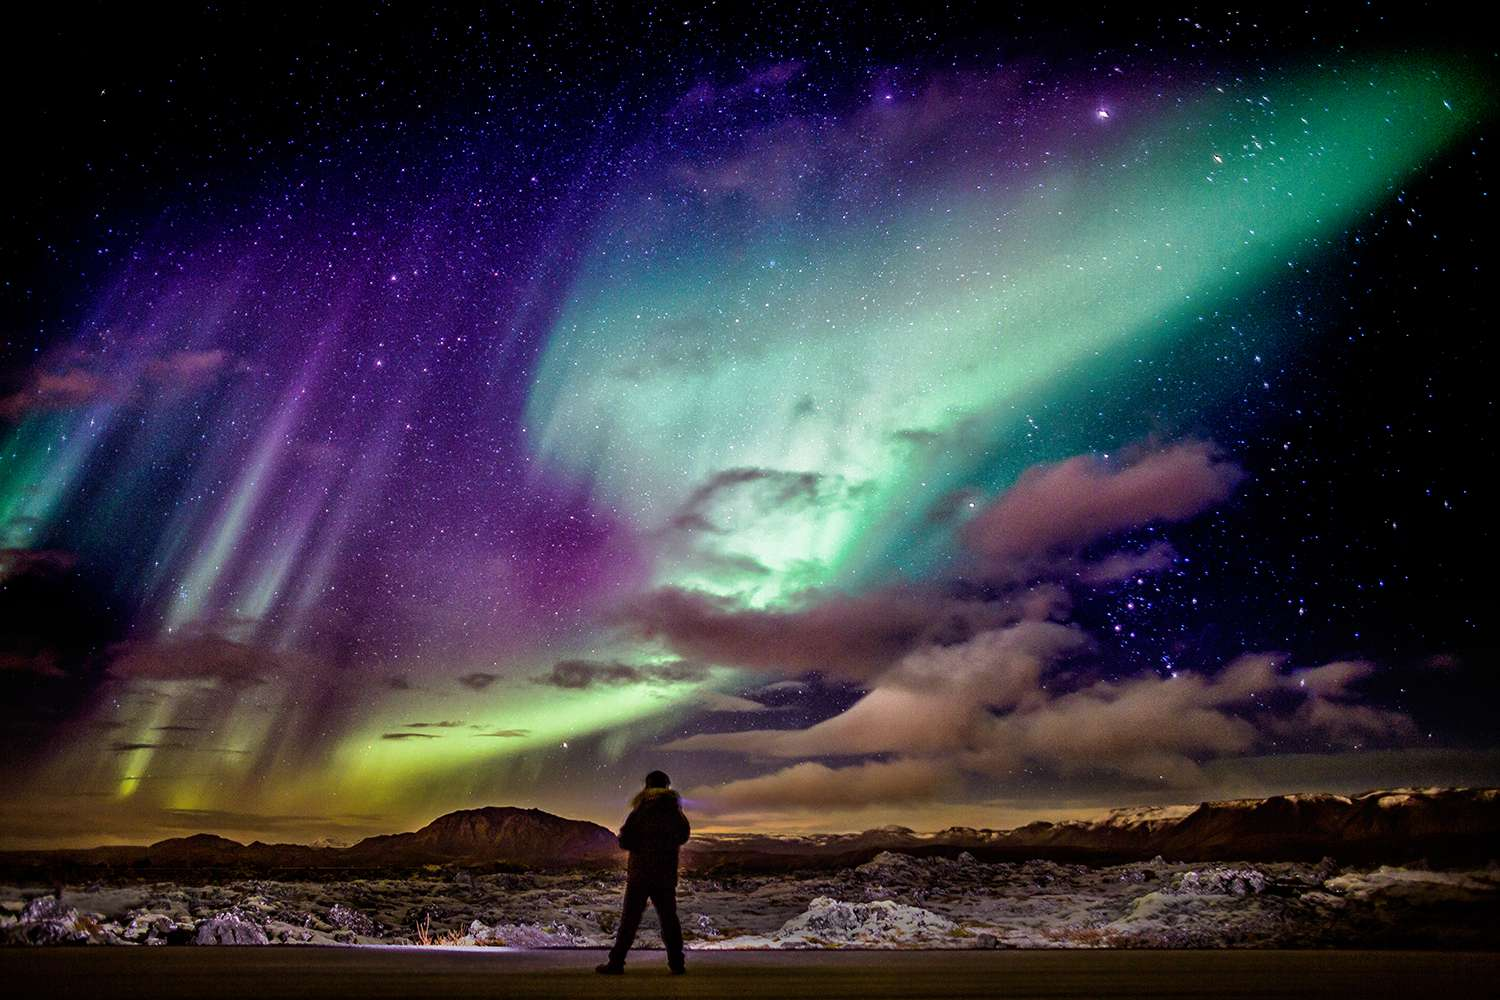 Person viewing the Northern lights over the lava landscape, Reykjanes Peninsula, Iceland.